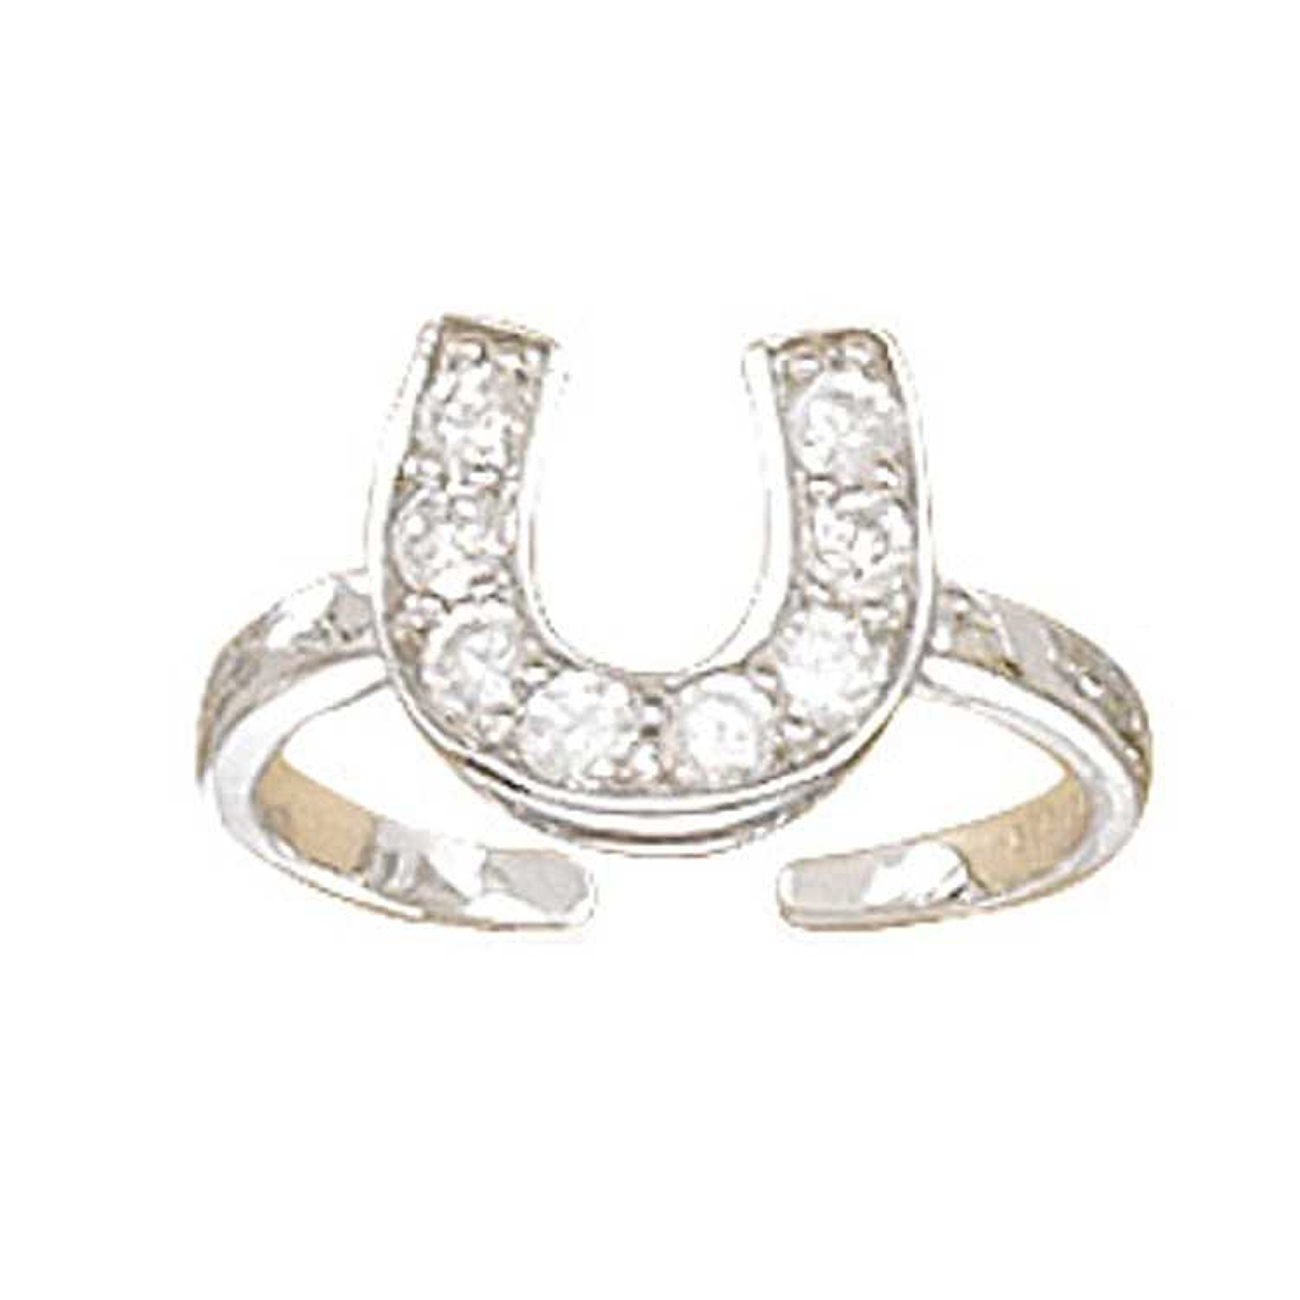 Cubic Zirconia Horseshoe Adjustable Toe Ring